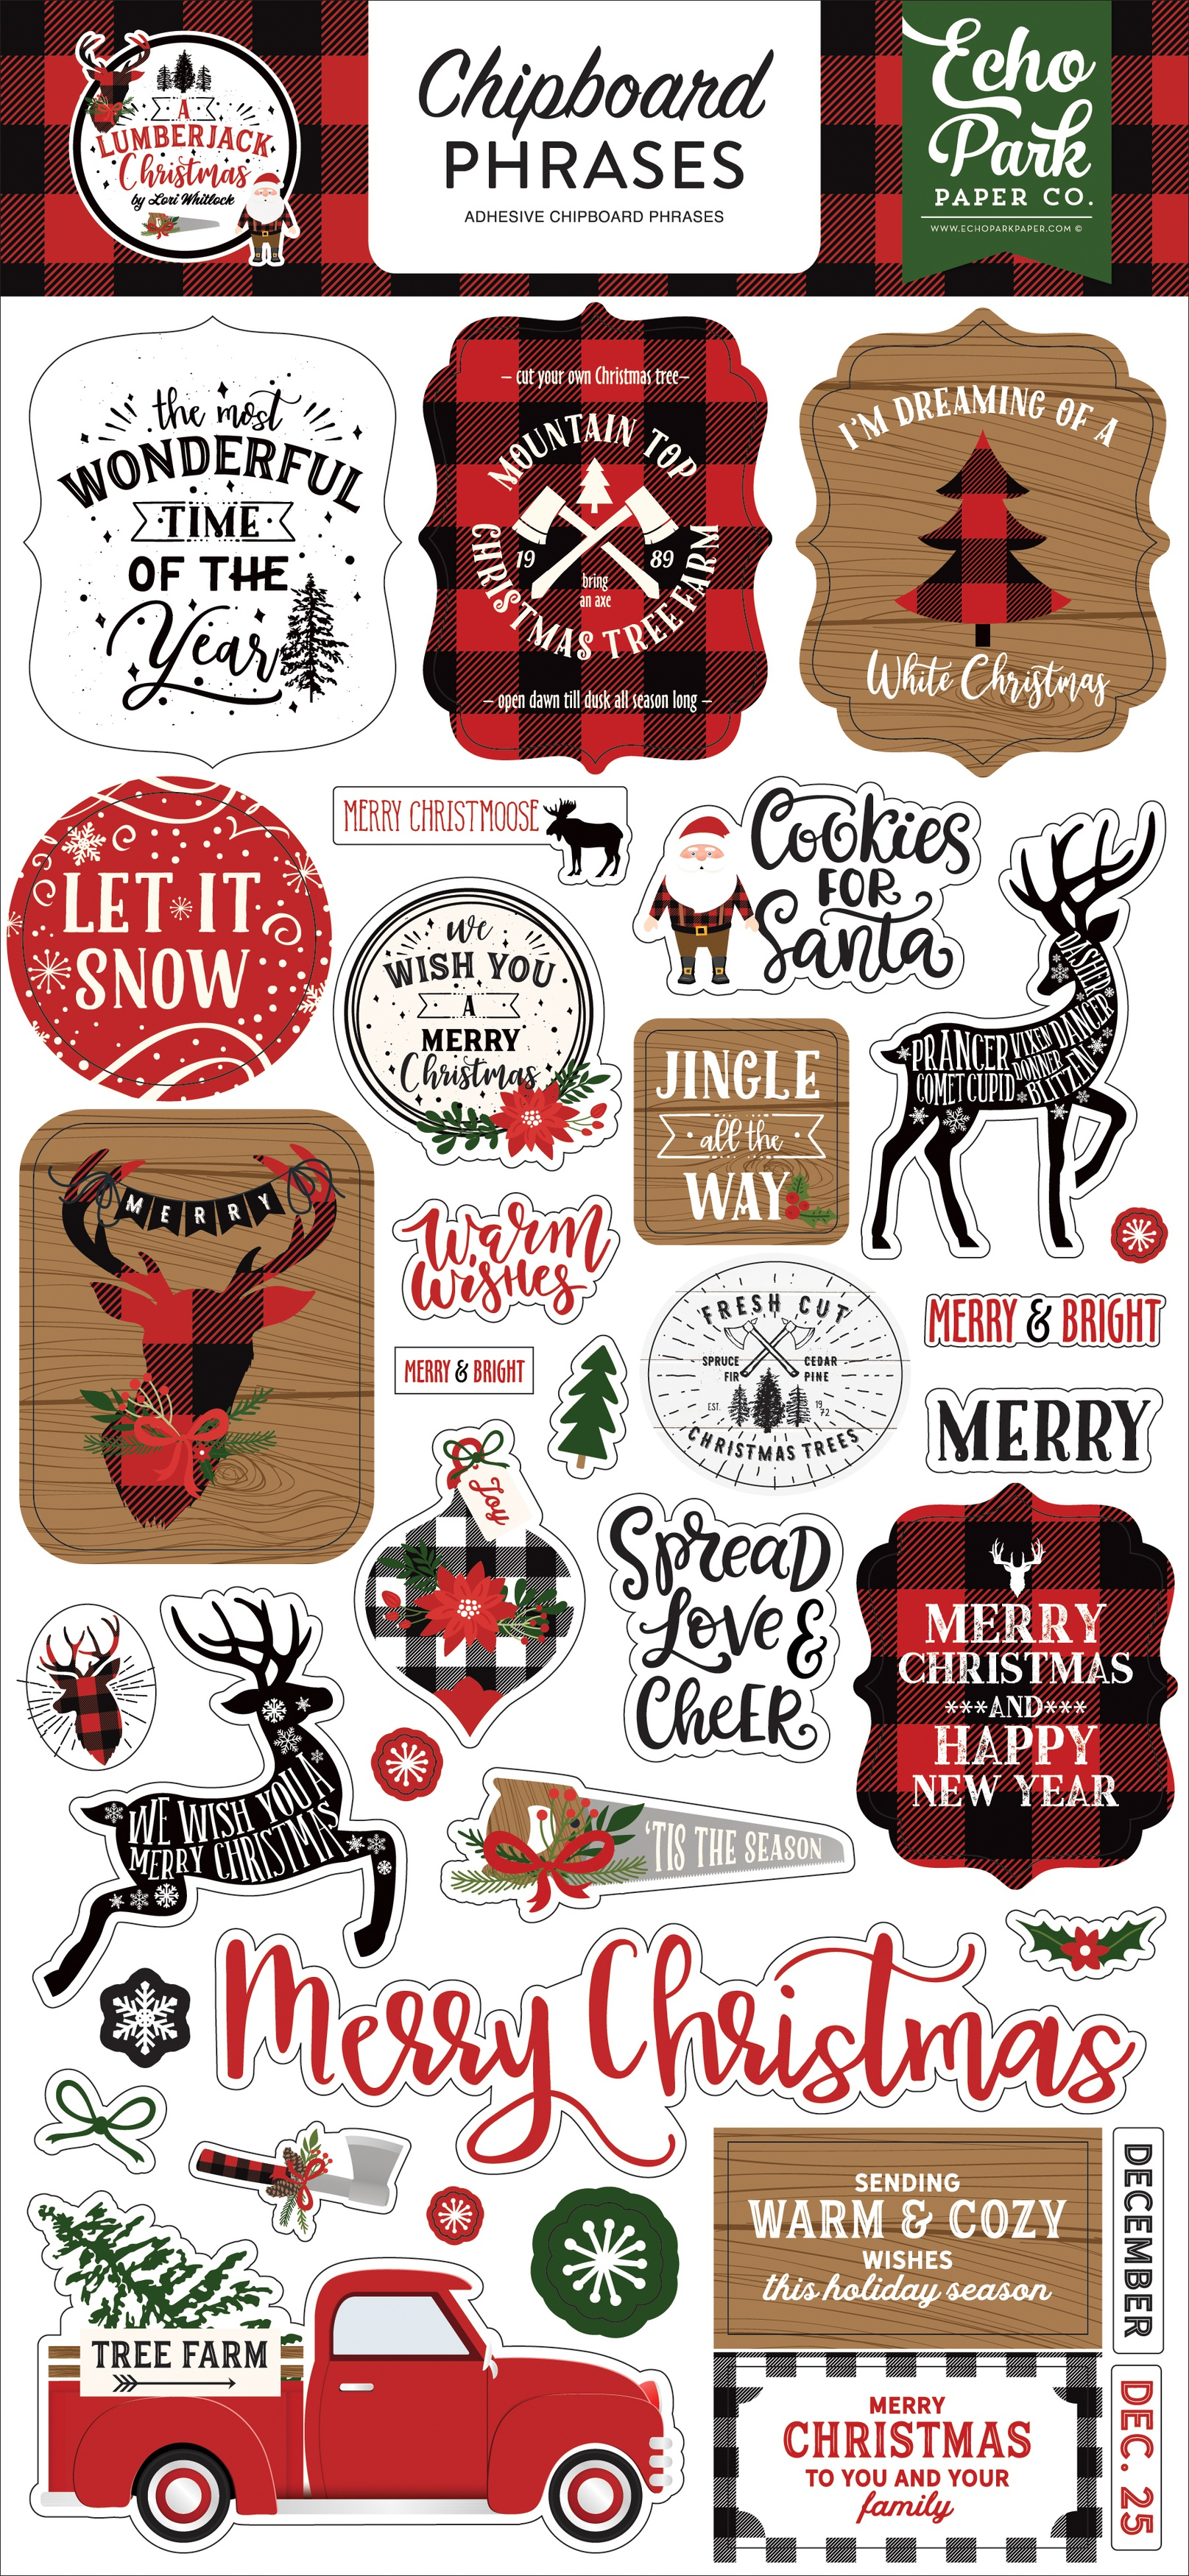 A Lumberjack Christmas Chipboard 6X13-Phrases